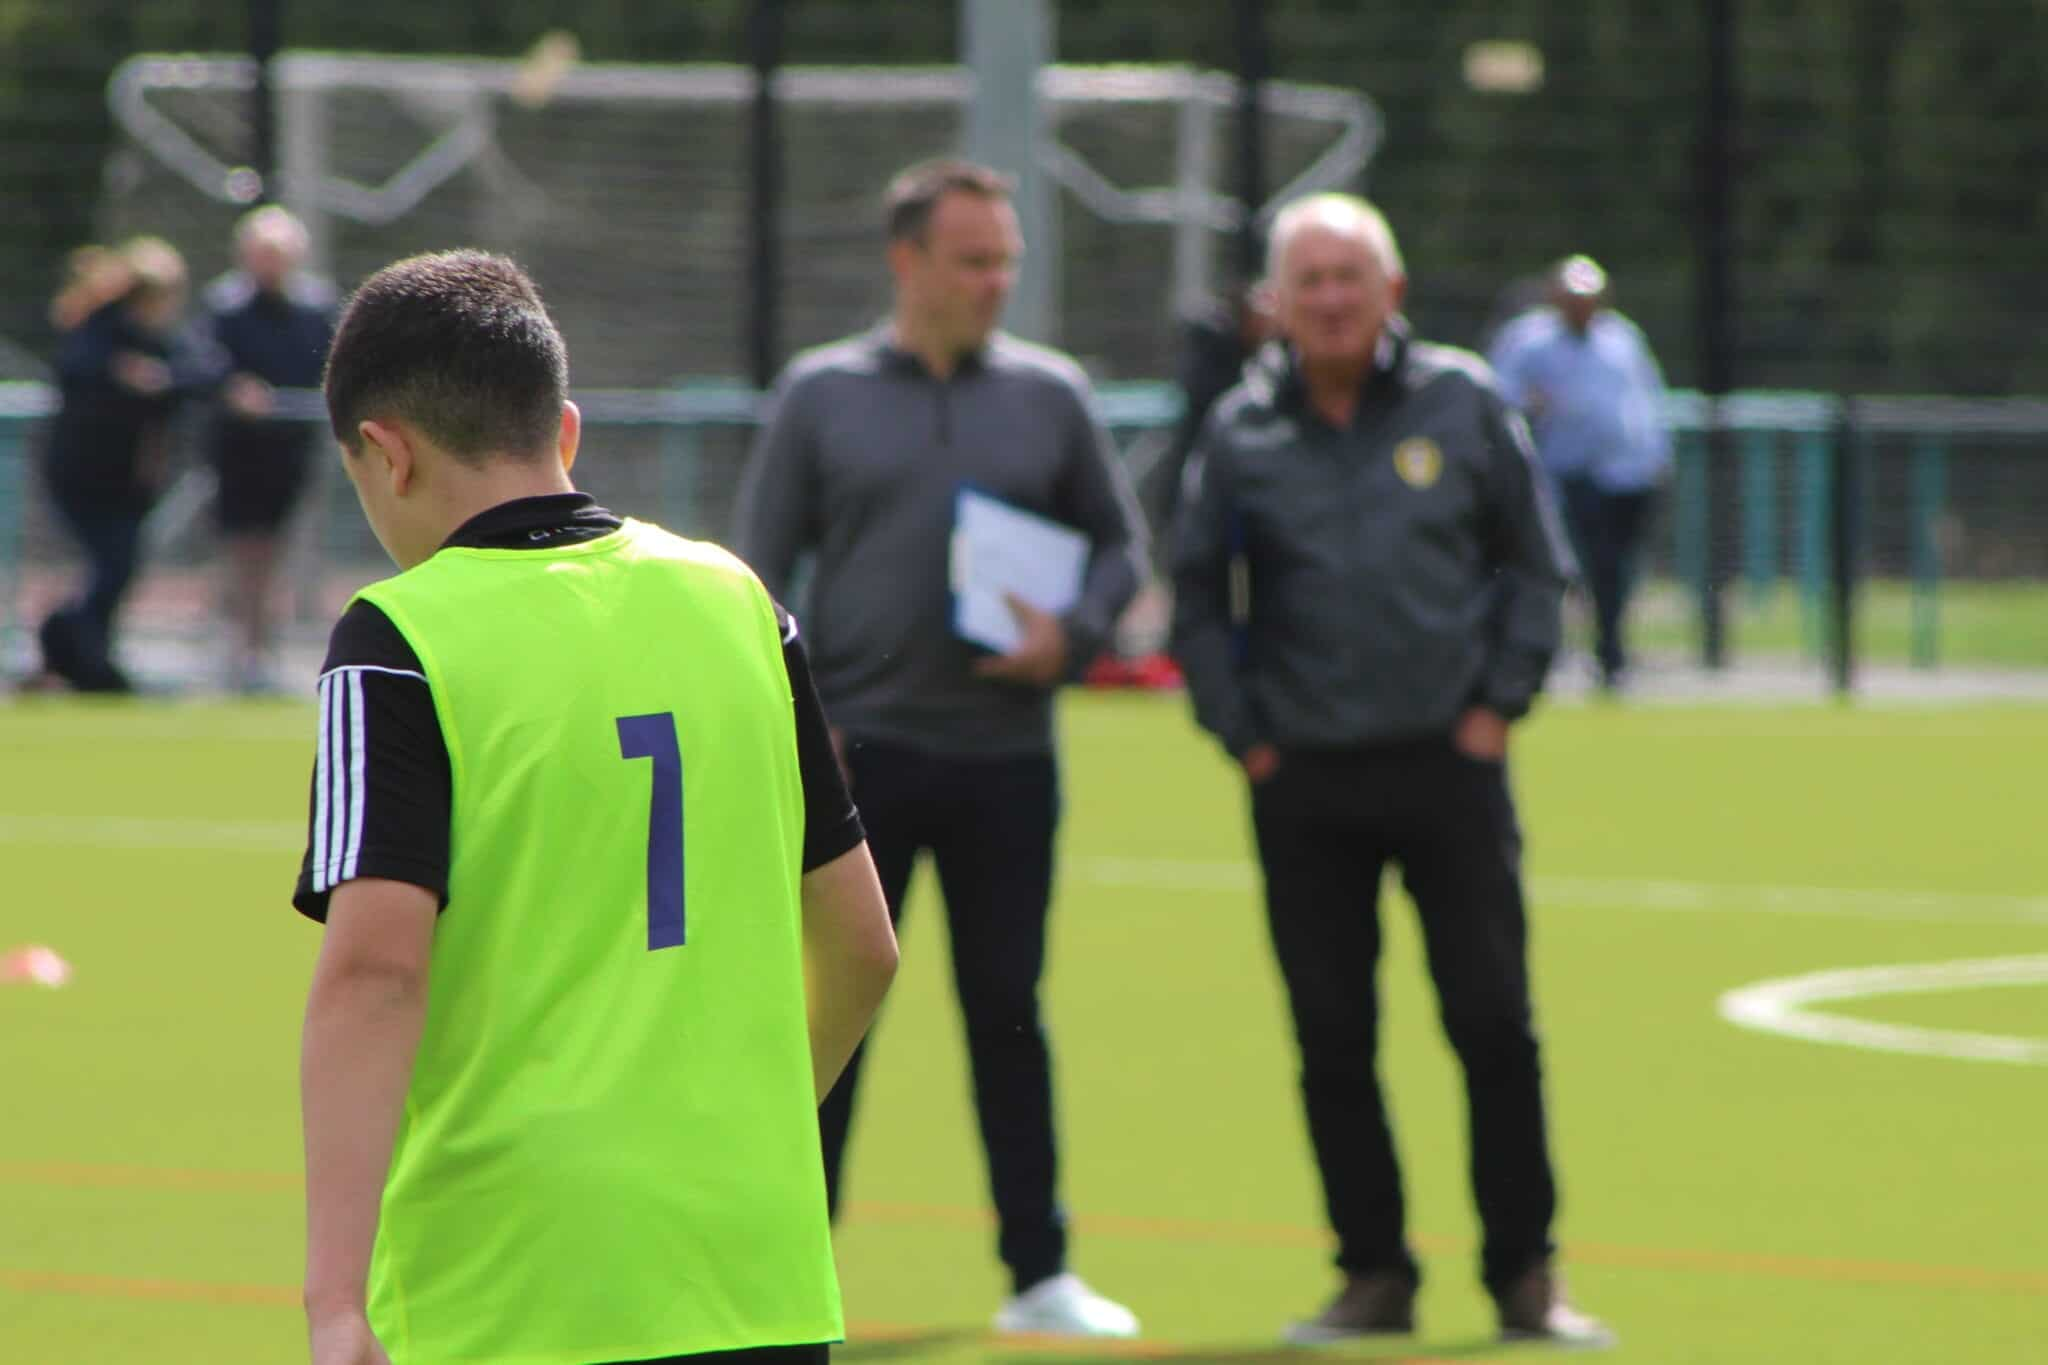 How To Get Scouted For Football The Pfsa